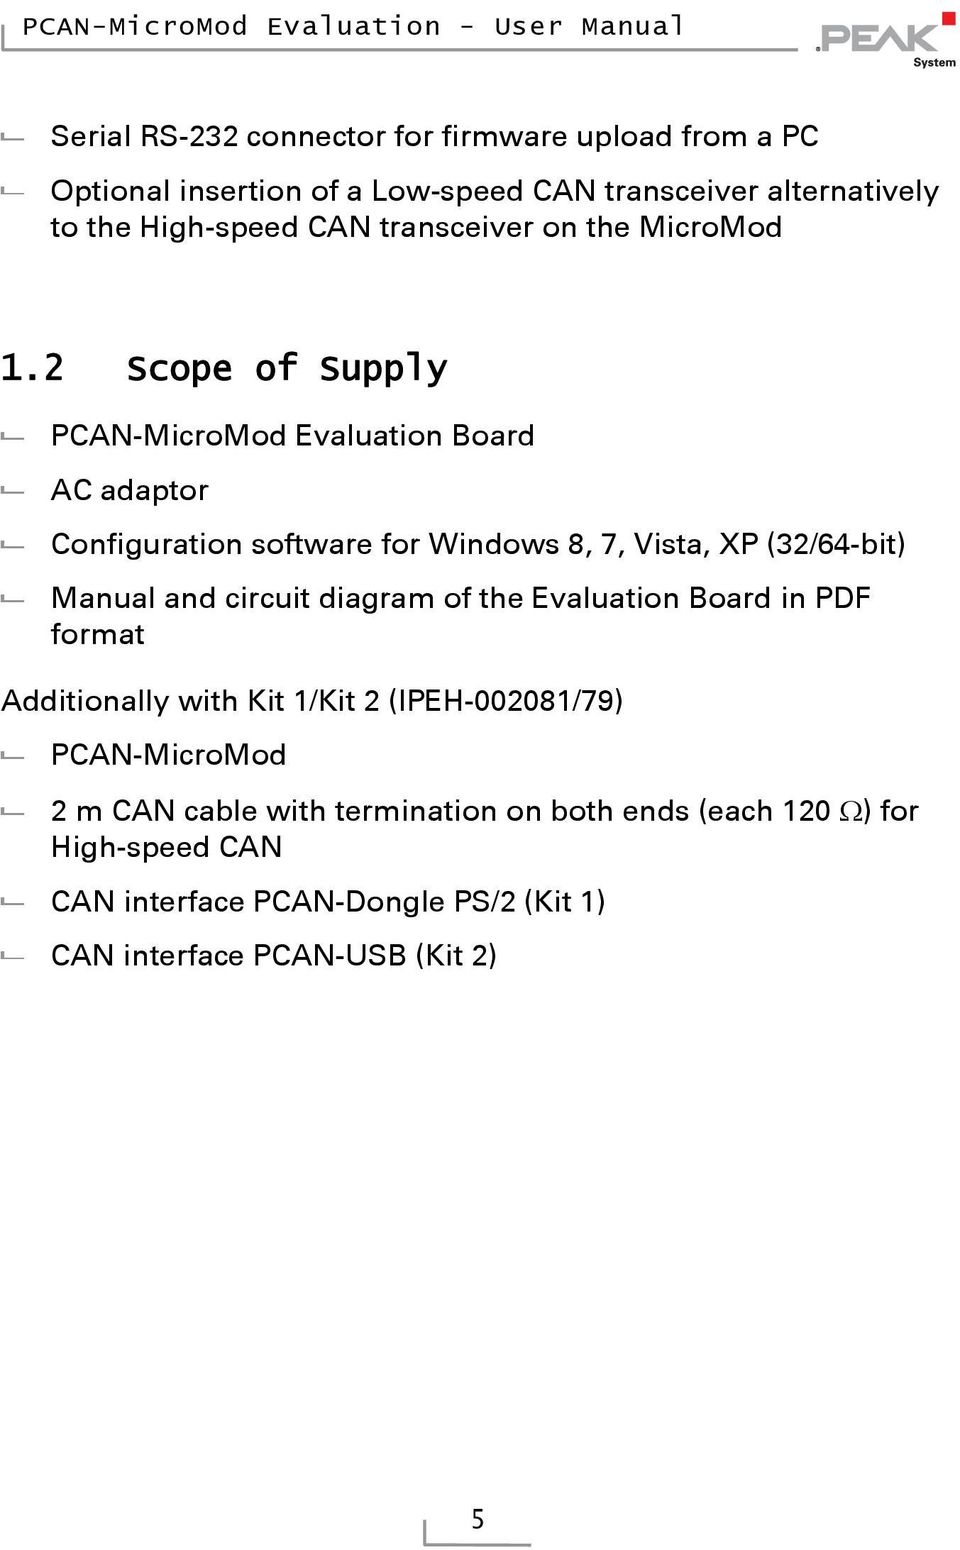 Scope of Supply PCAN-MicroMod Evaluation Board AC adaptor Configuration software for Windows,, Vista, XP (/-bit) Manual and circuit